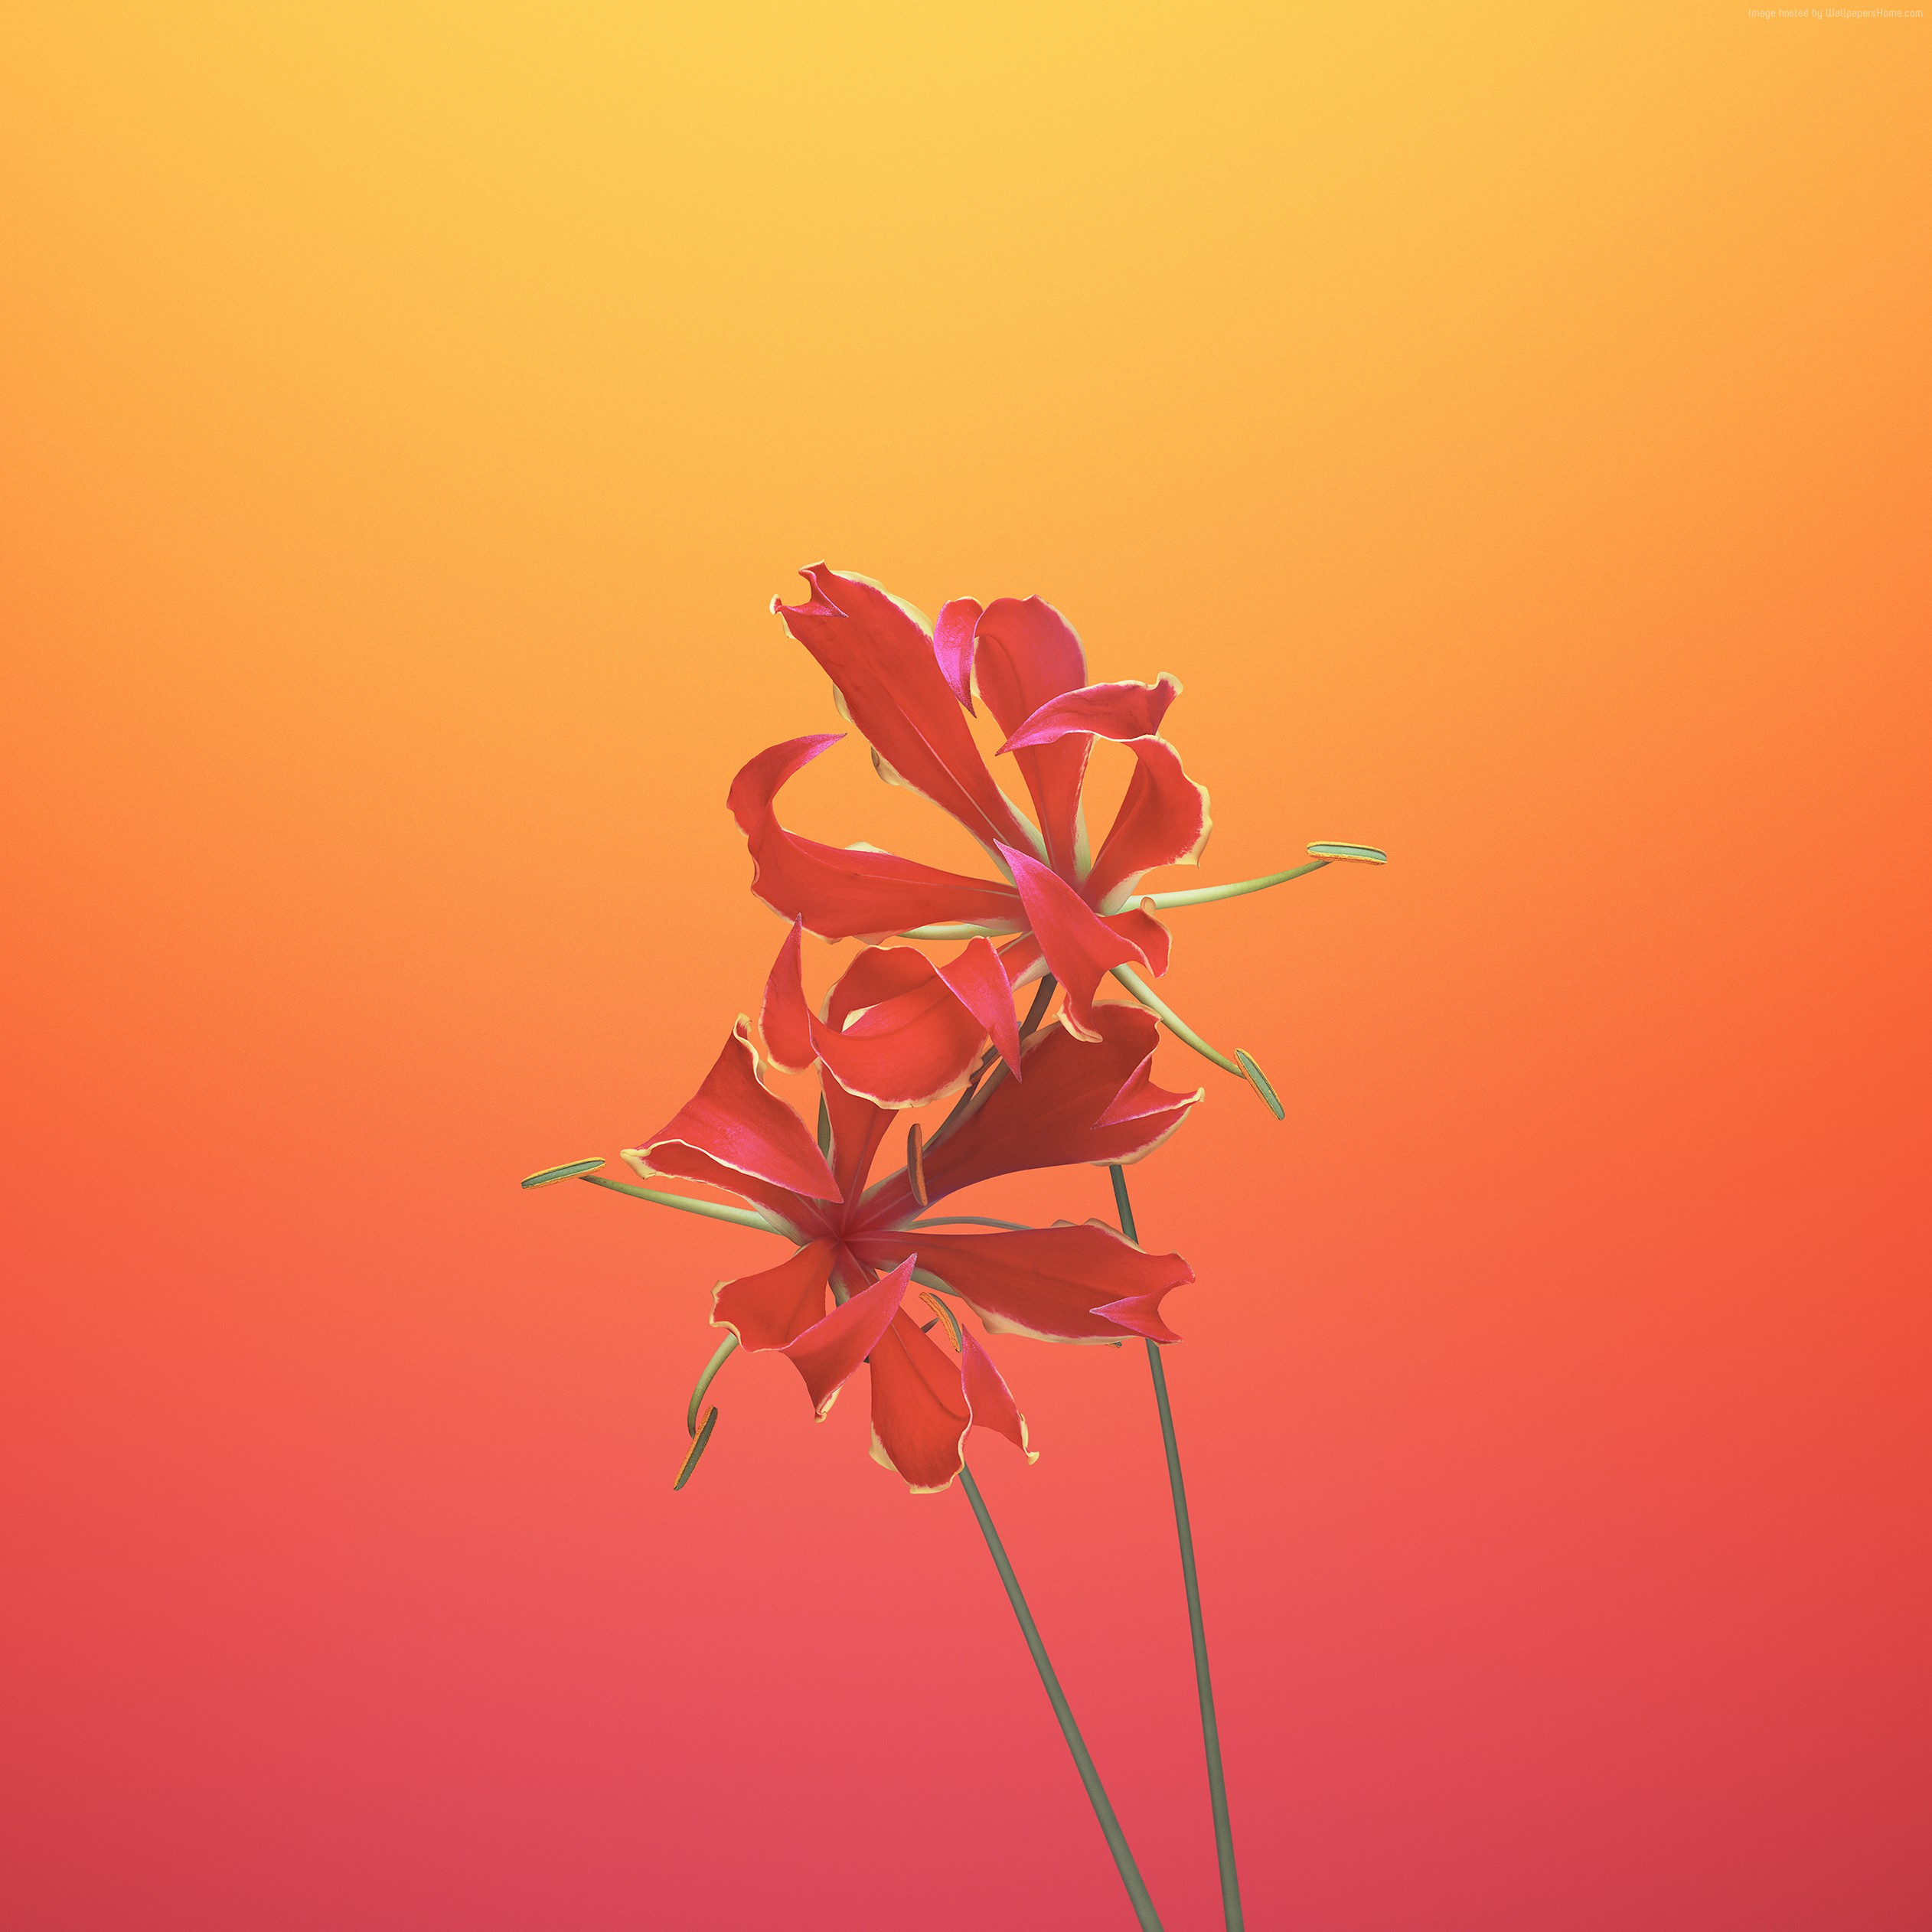 Wallpaper iPhone X wallpapers iPhone 8 iOS11 flower 2524x2524